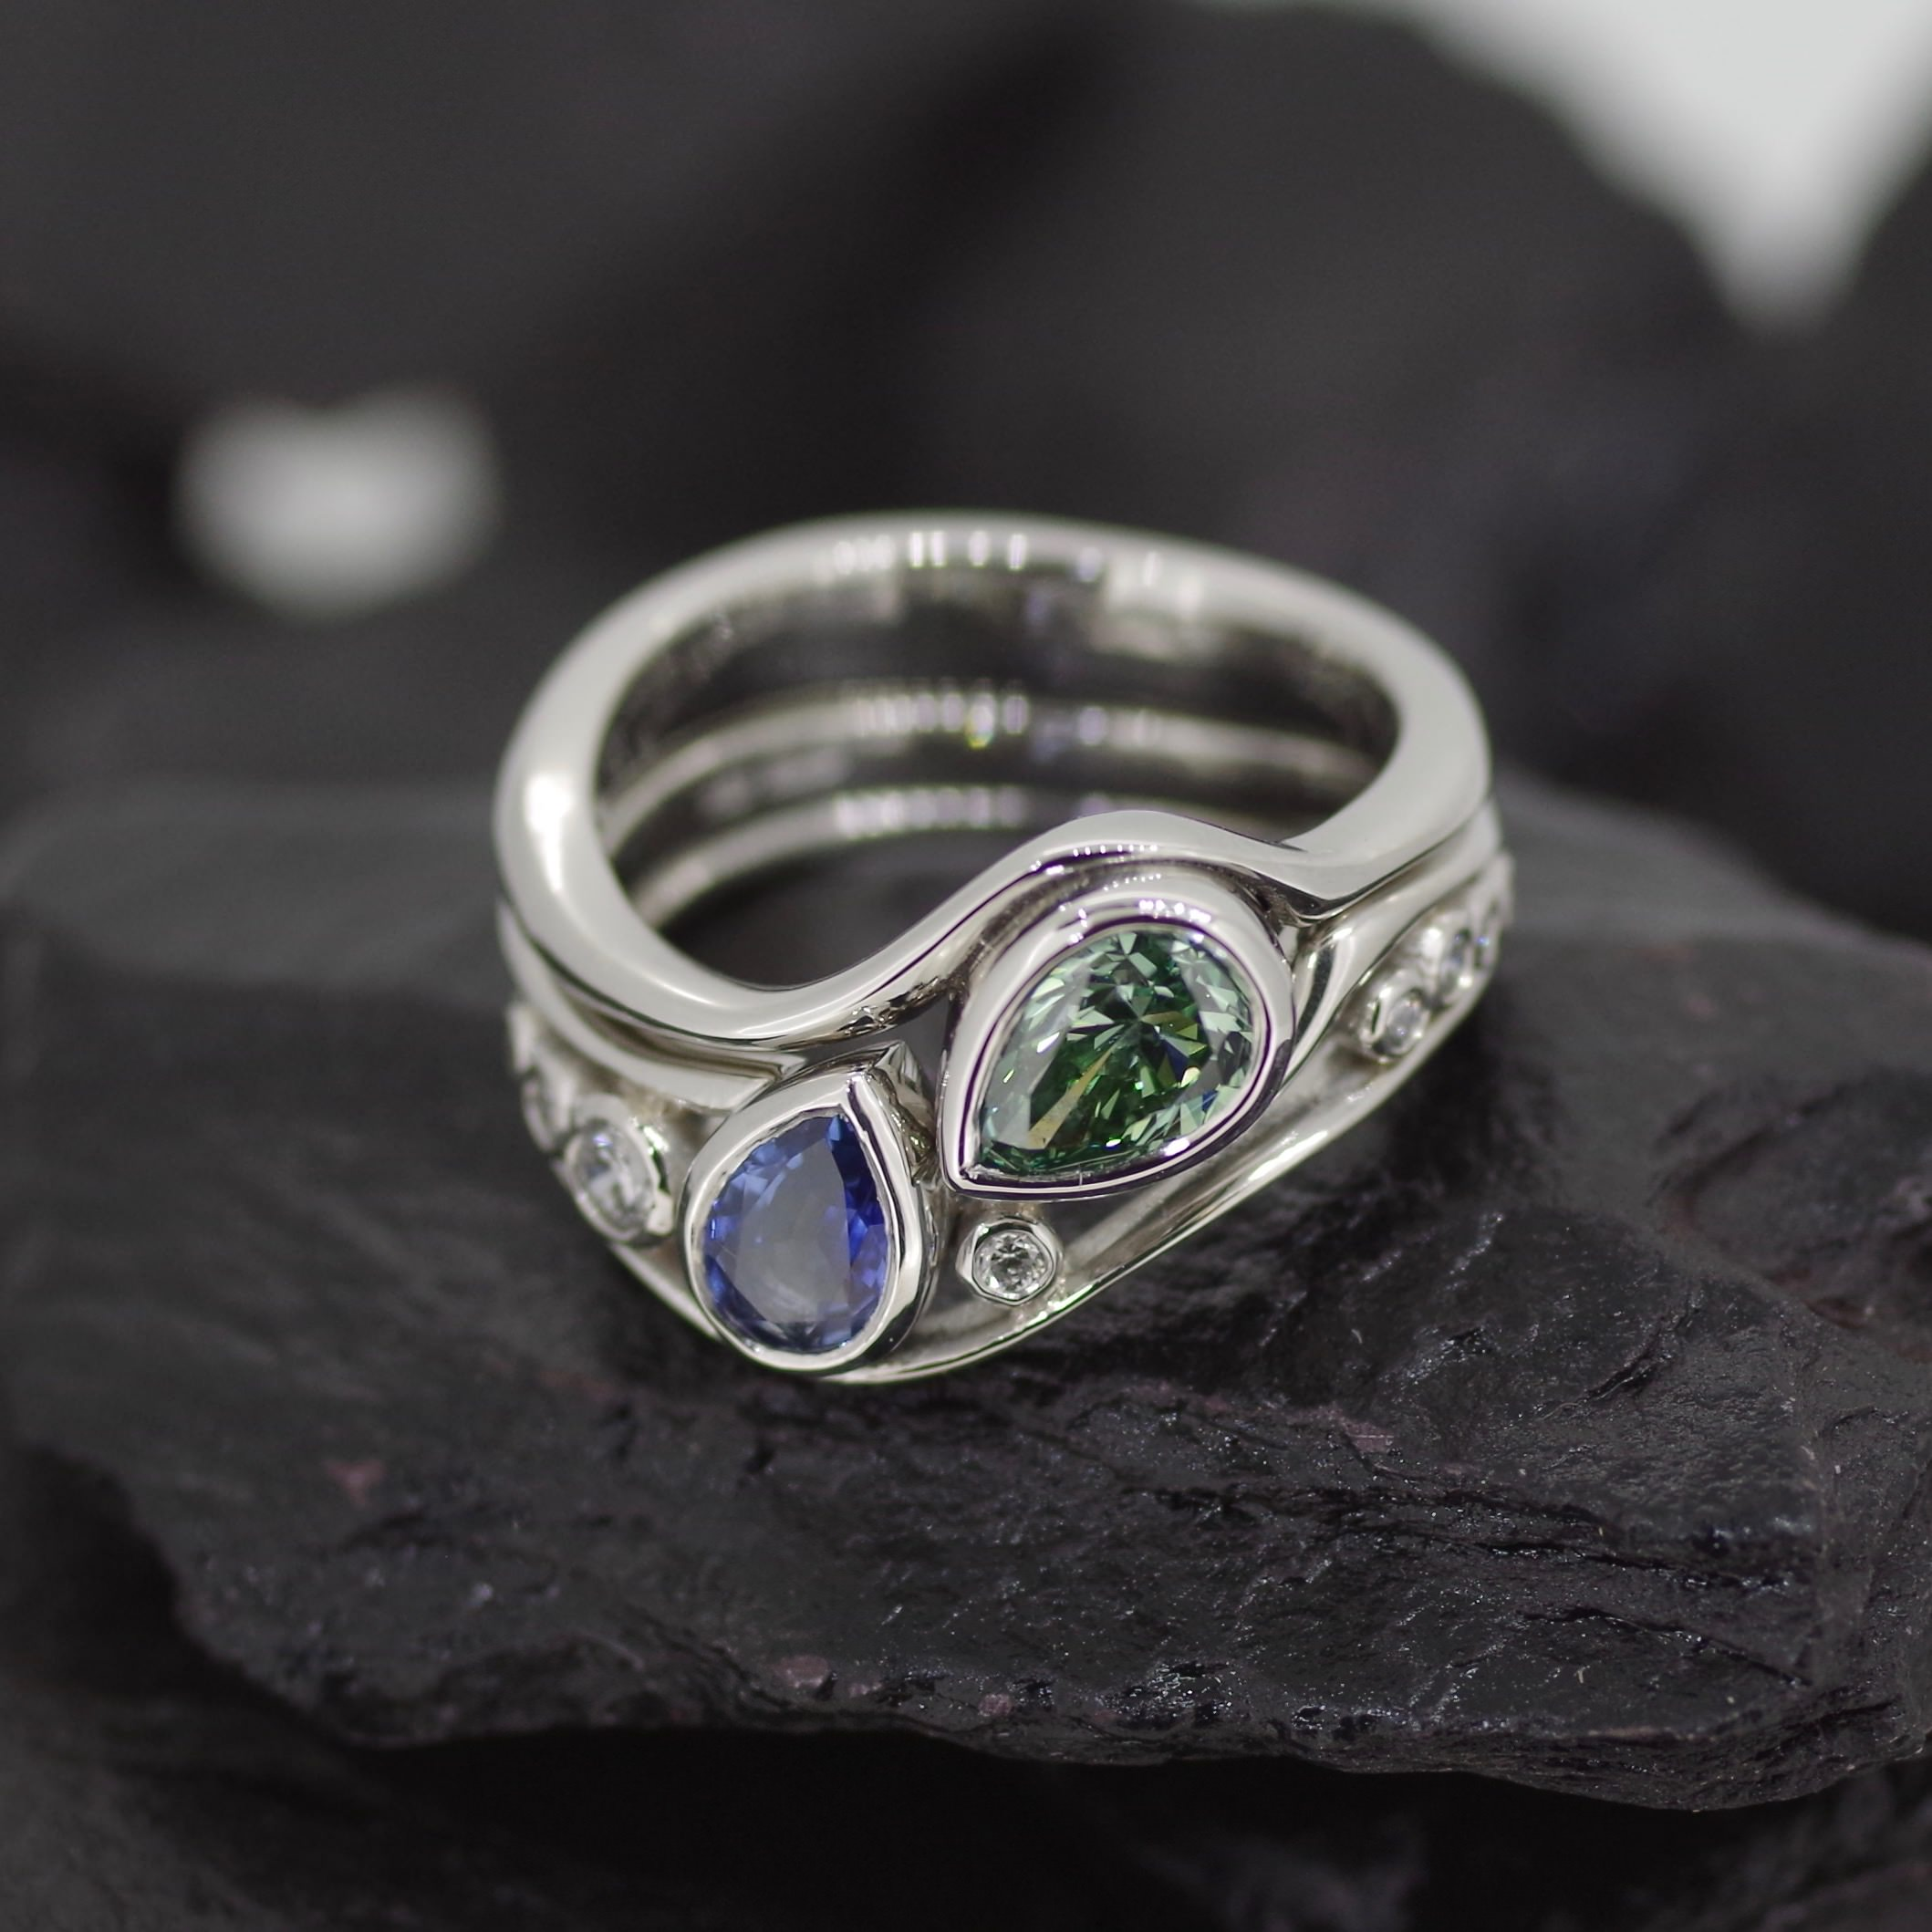 Platinum two part ring, 1st ring set with 0.69ct pear cut Green Diamond, 2nd ring set with 0.60ct pear cut sapphire and flanking Diamonds. (ER010)